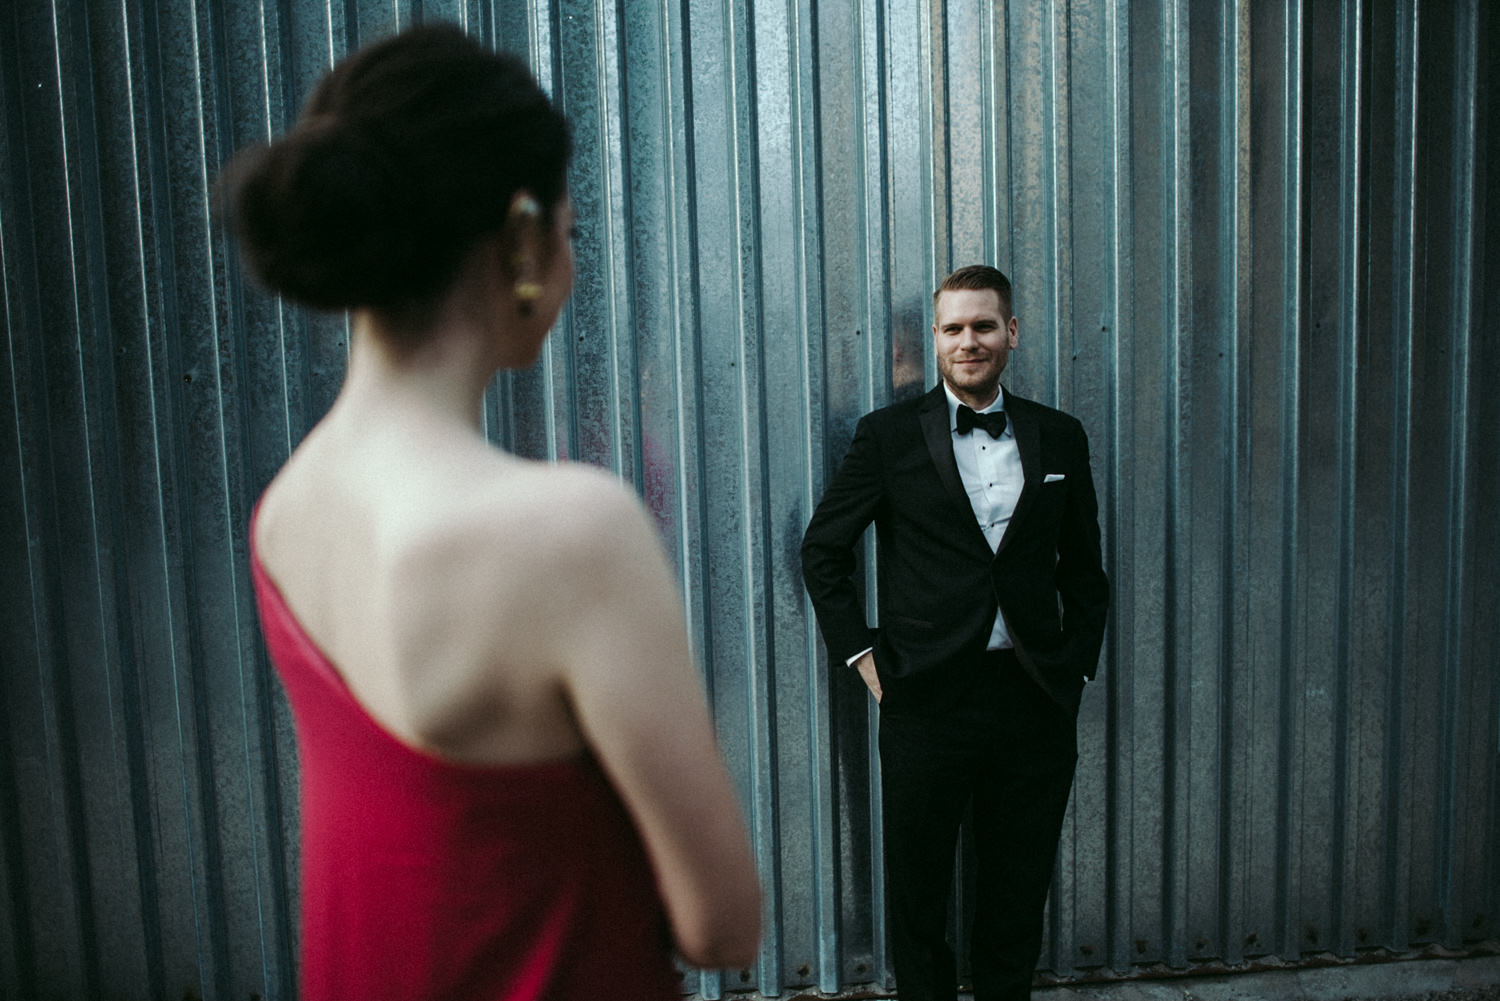 new-york-elopement-engagement-pictures-giancarlo-photography-99.jpg